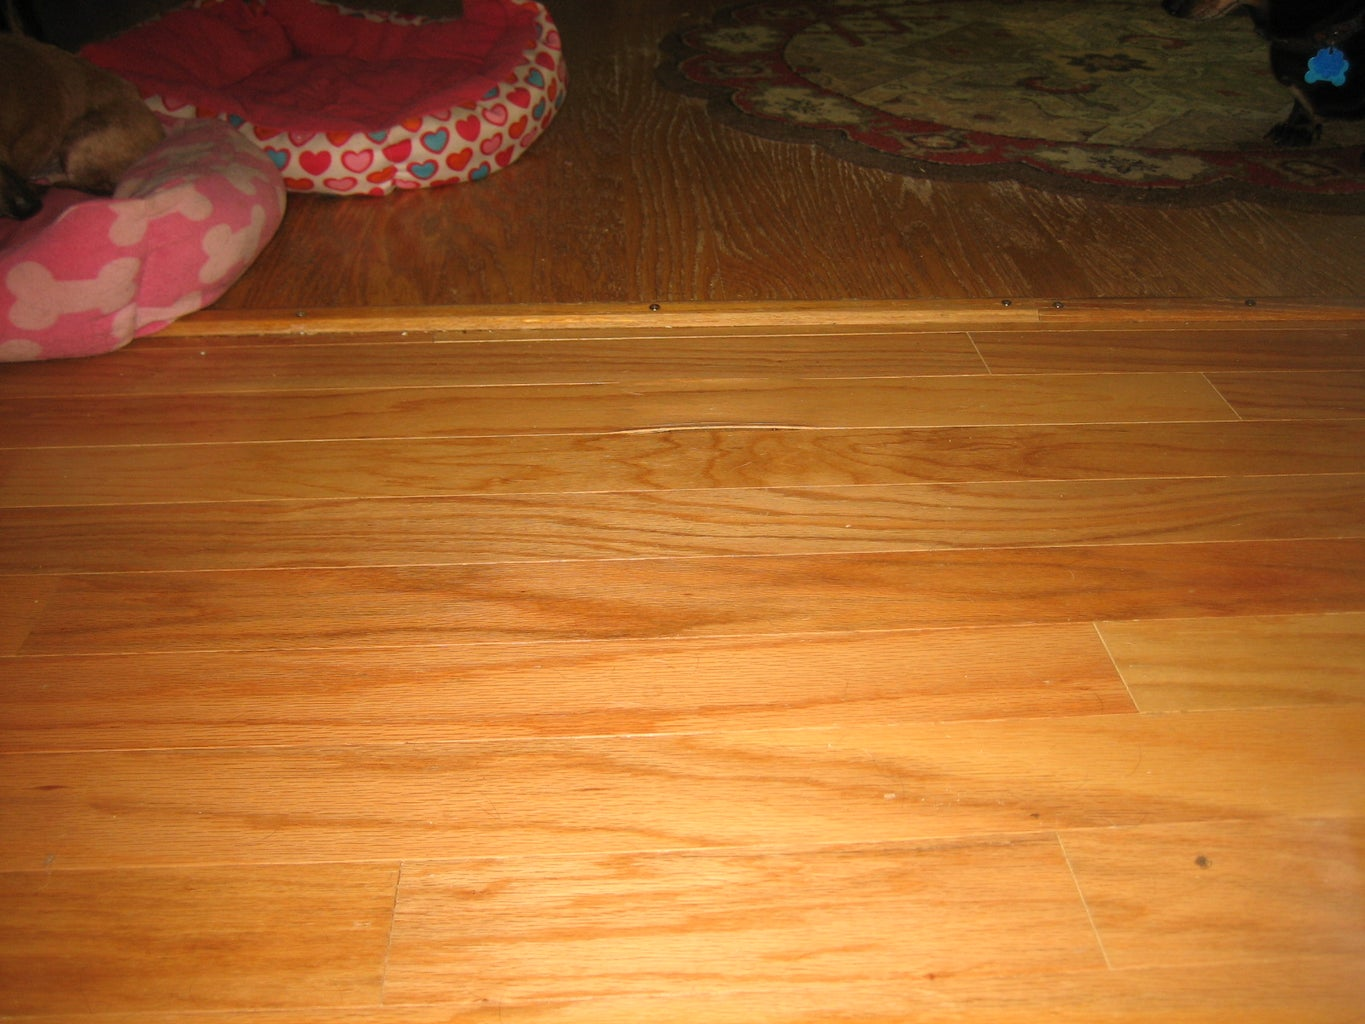 HOW I REPLACED a PEELING FLOOR BOARD